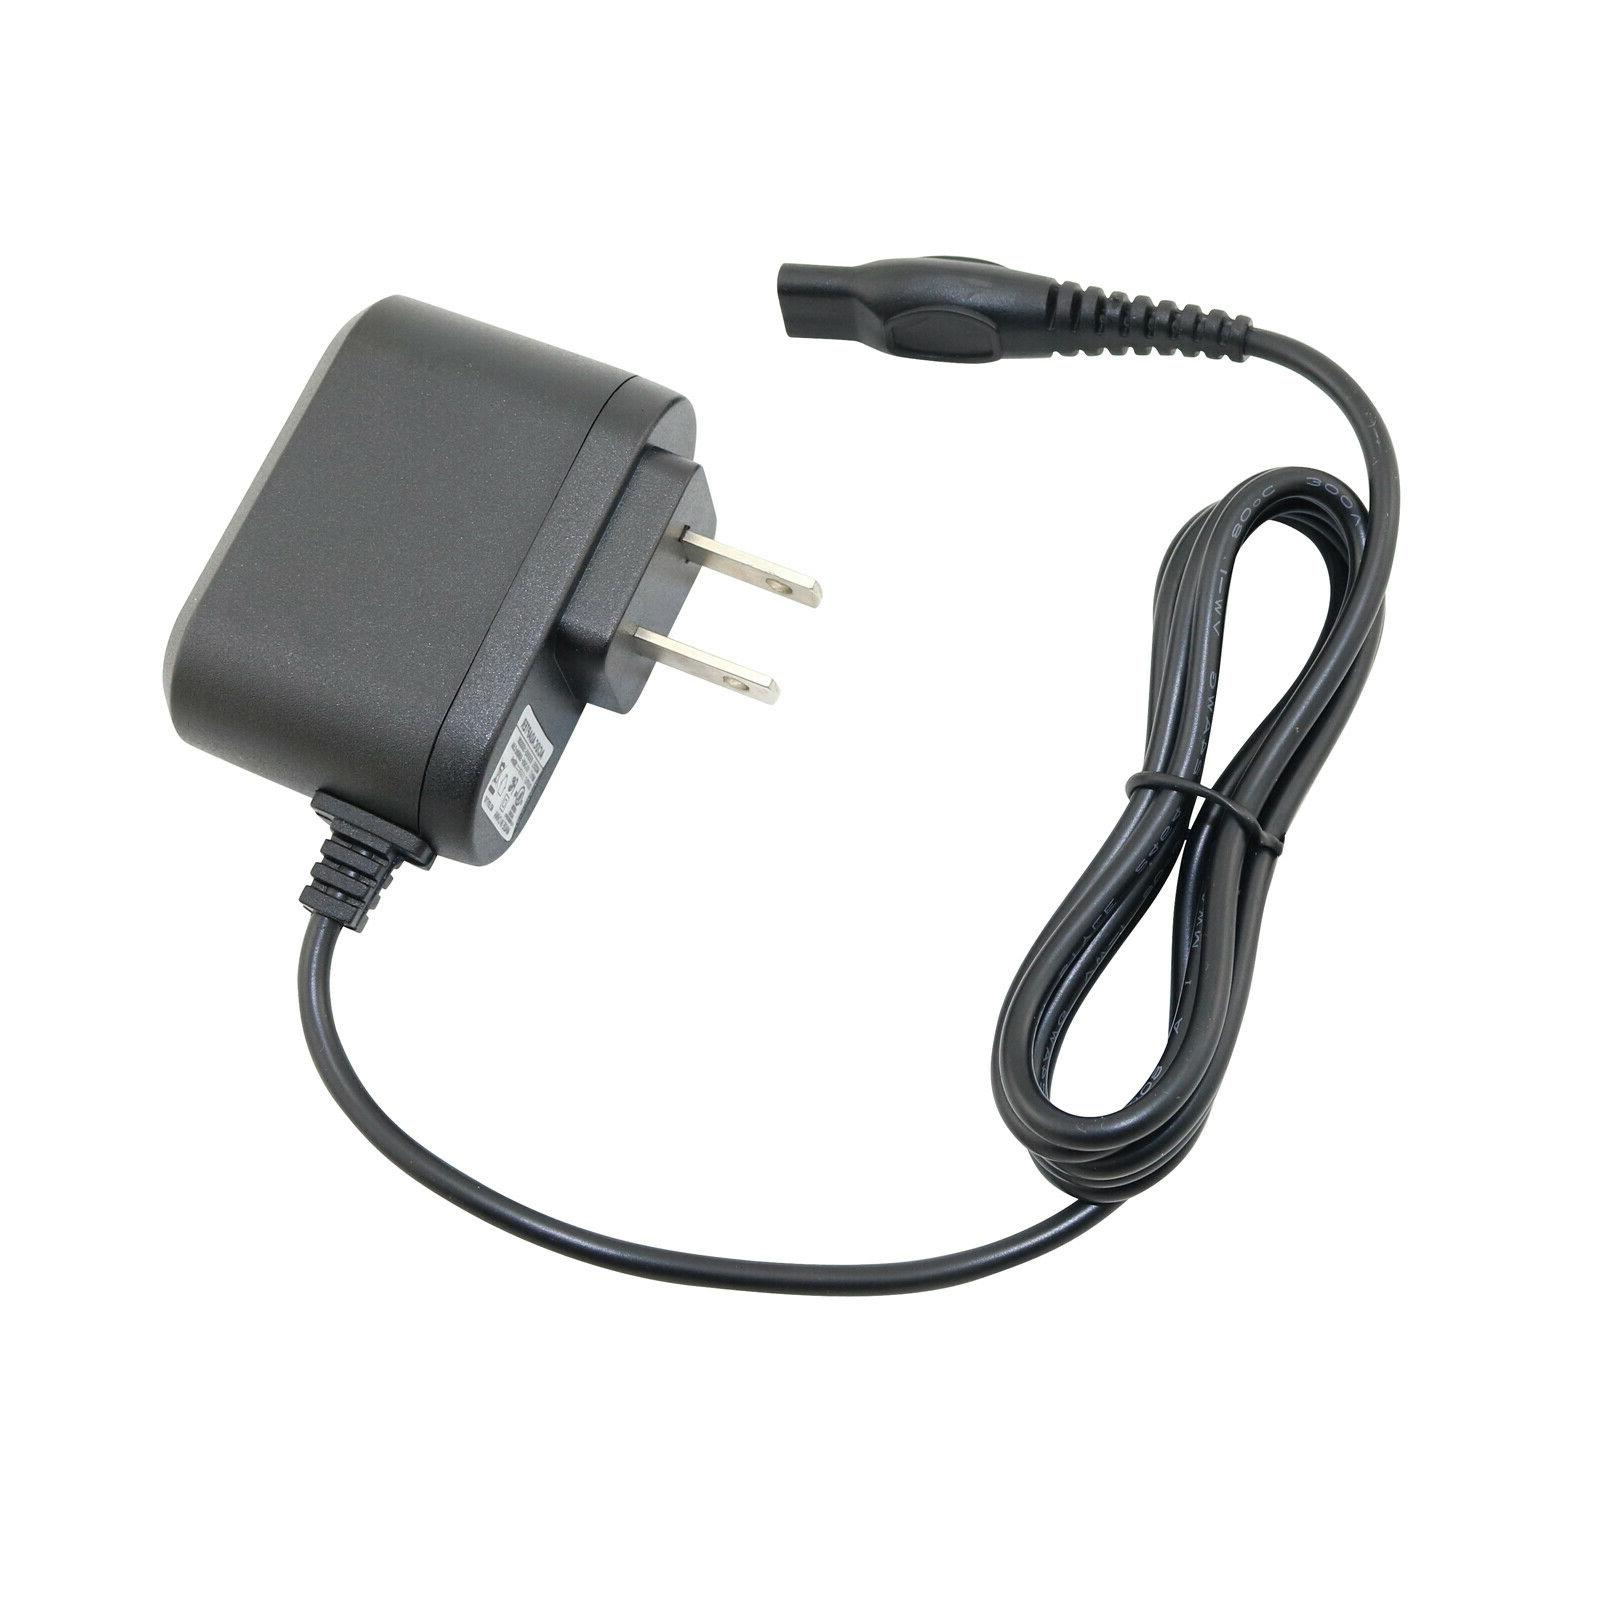 universal ac power adapt charger cord